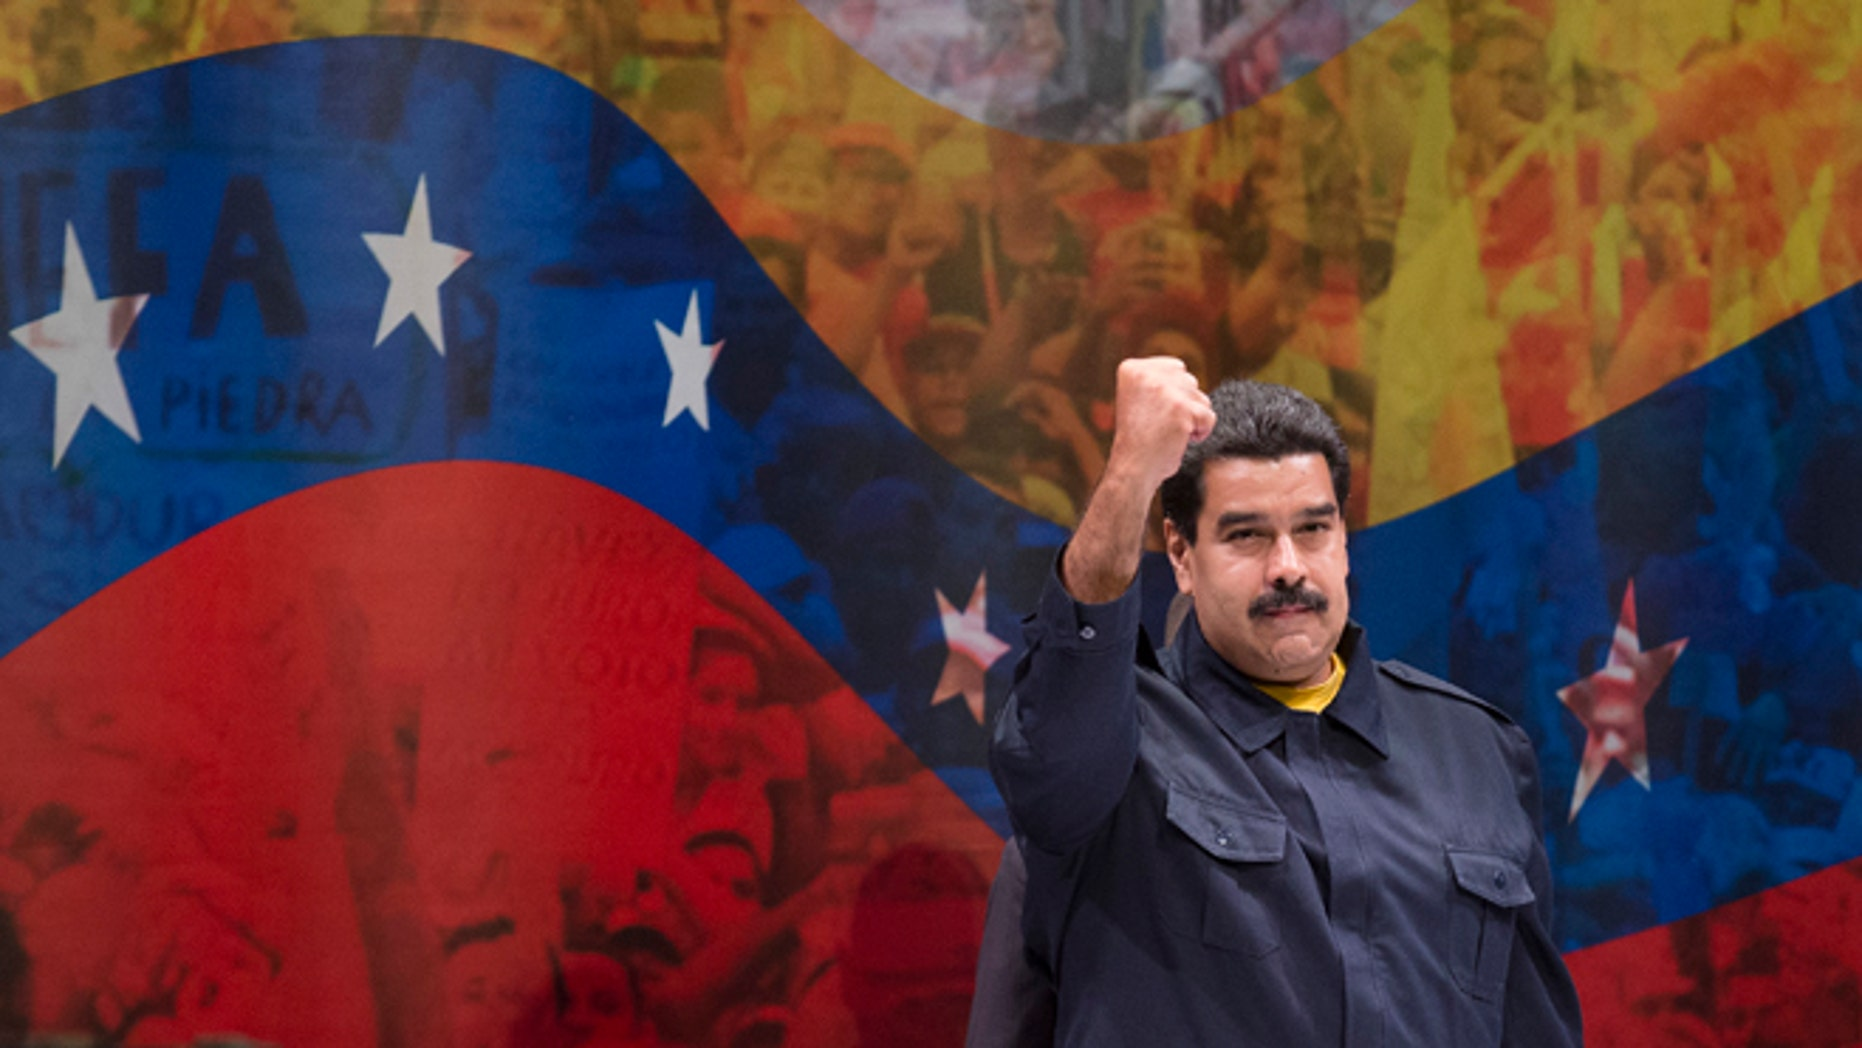 Nicolás Maduro, President of Venezuela, gestures to the crowd before he speaks at Hostos Community College as the United Nations General Assembly convenes, Tuesday, Sept. 23, 2014, in the Bronx borough of New York. (AP Photo/John Minchillo)